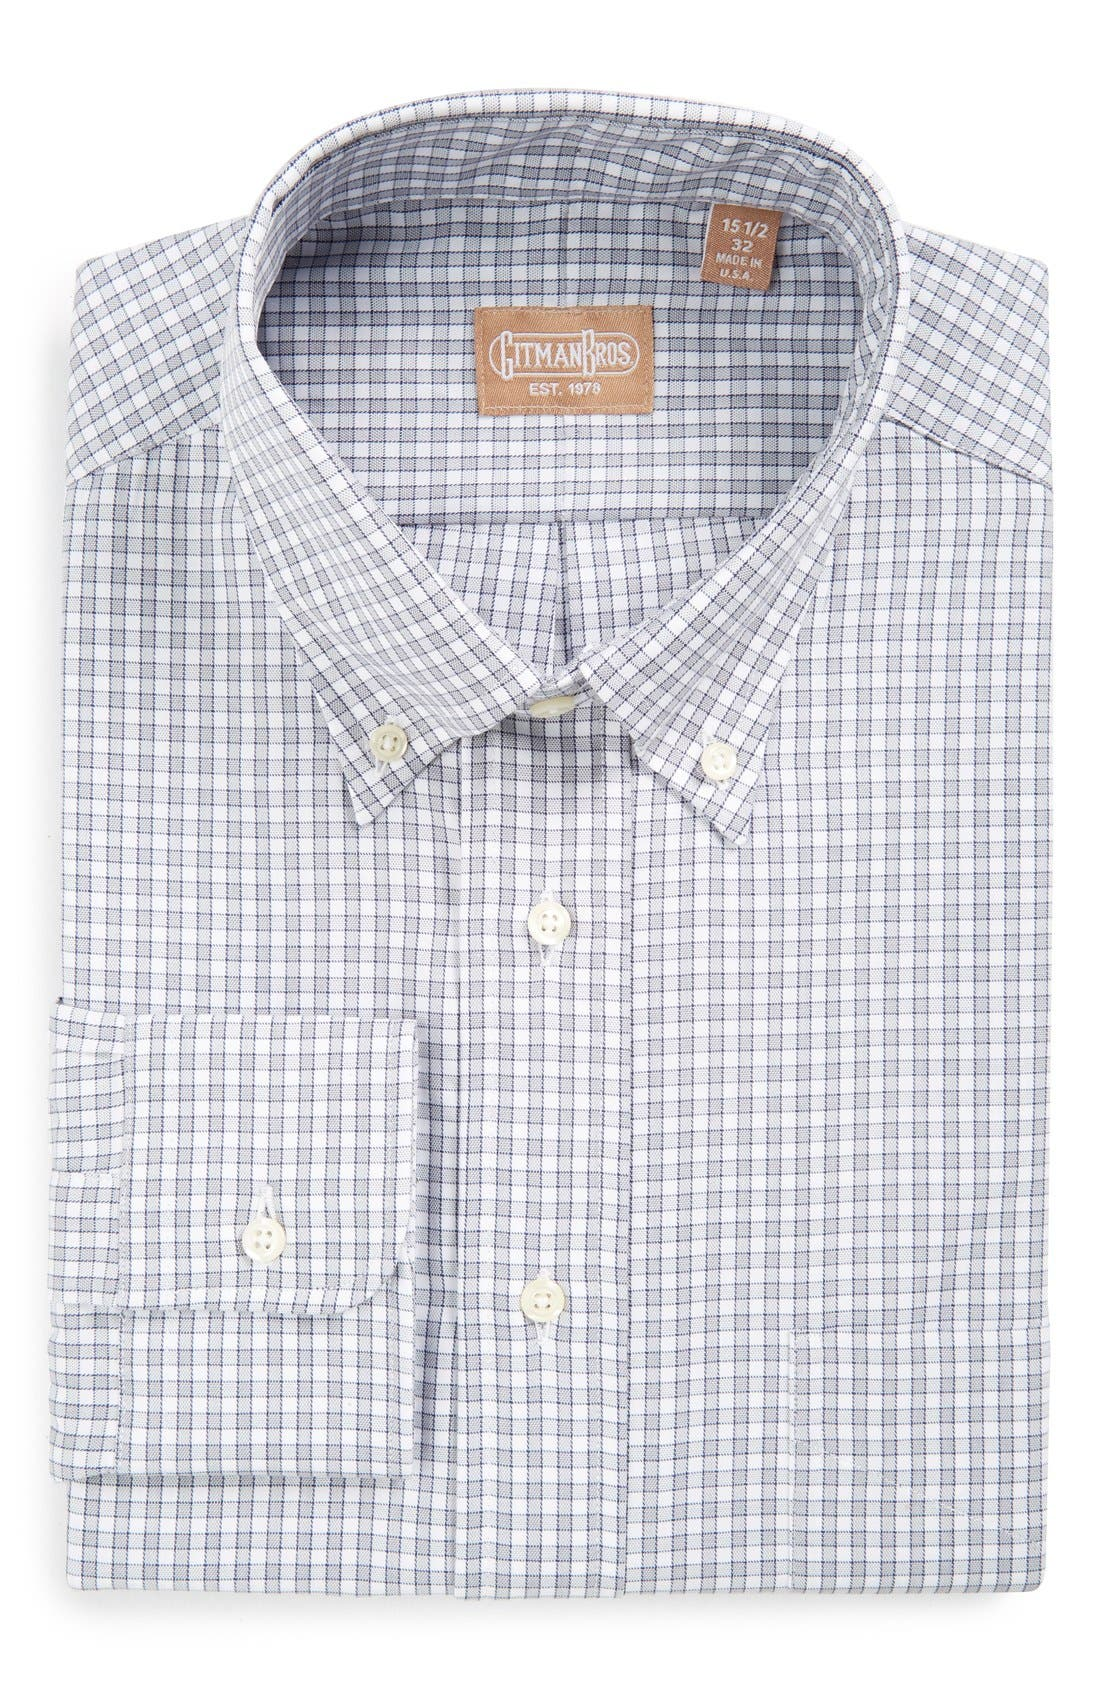 Regular Fit Gingham Check Dress Shirt,                         Main,                         color, Grey